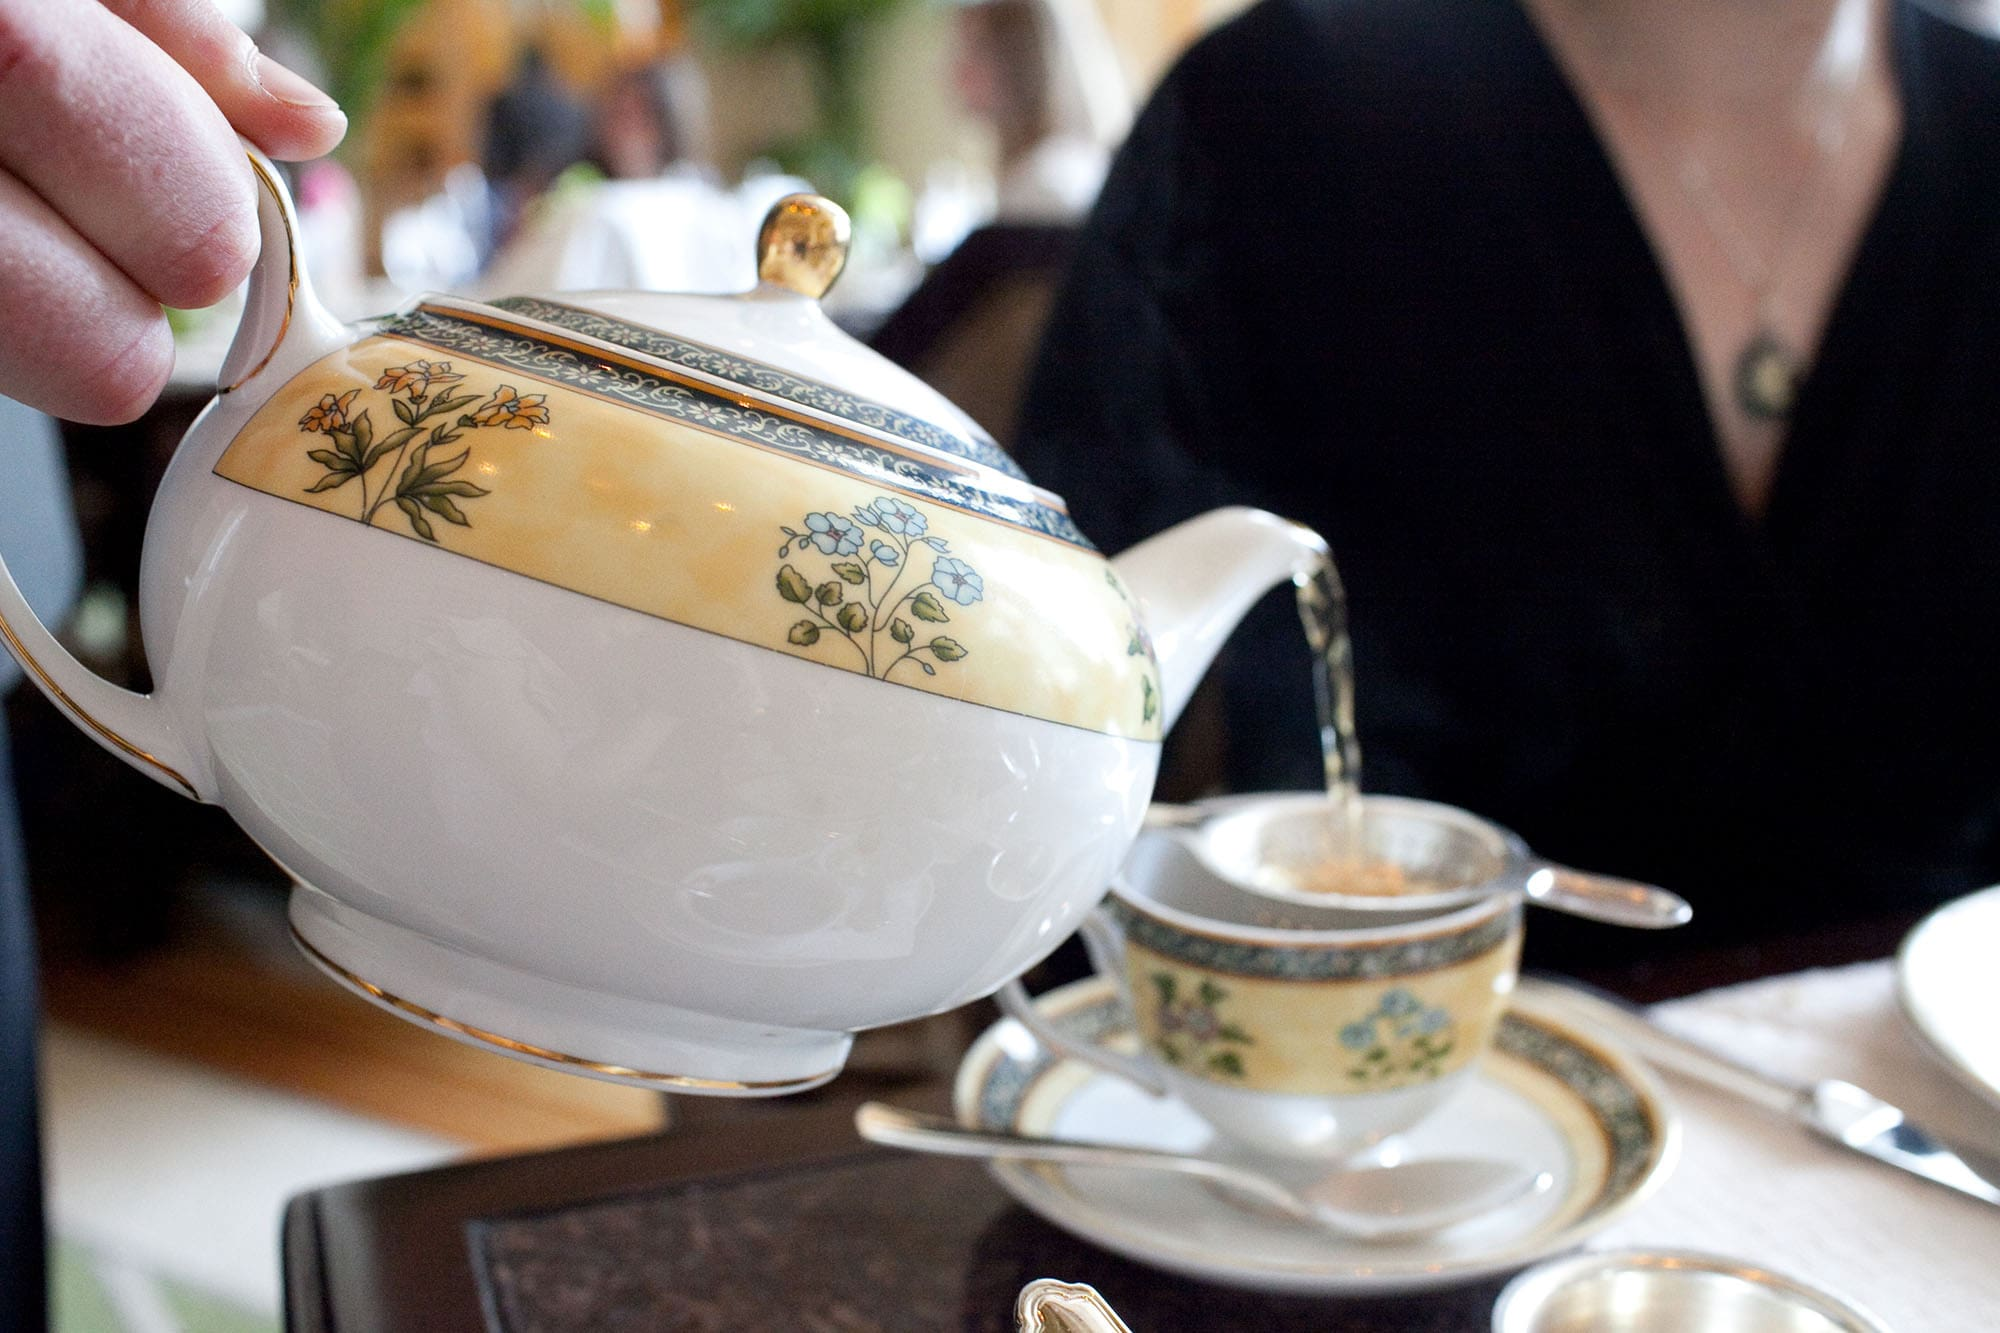 Afternoon tea at the Lobby at The Peninsula in Chicago, Illinois.